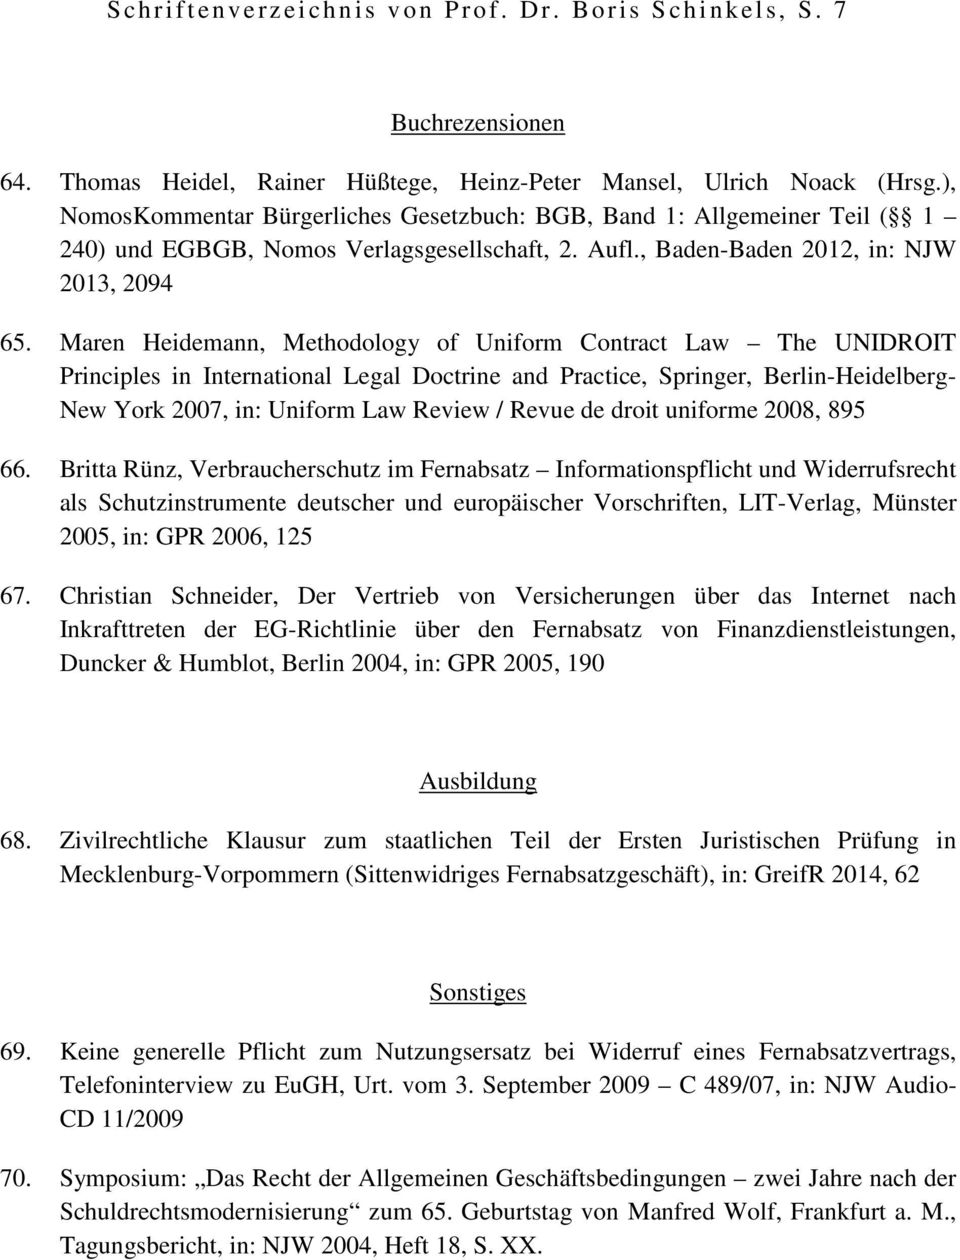 Maren Heidemann, Methodology of Uniform Contract Law The UNIDROIT Principles in International Legal Doctrine and Practice, Springer, Berlin-Heidelberg- New York 2007, in: Uniform Law Review / Revue